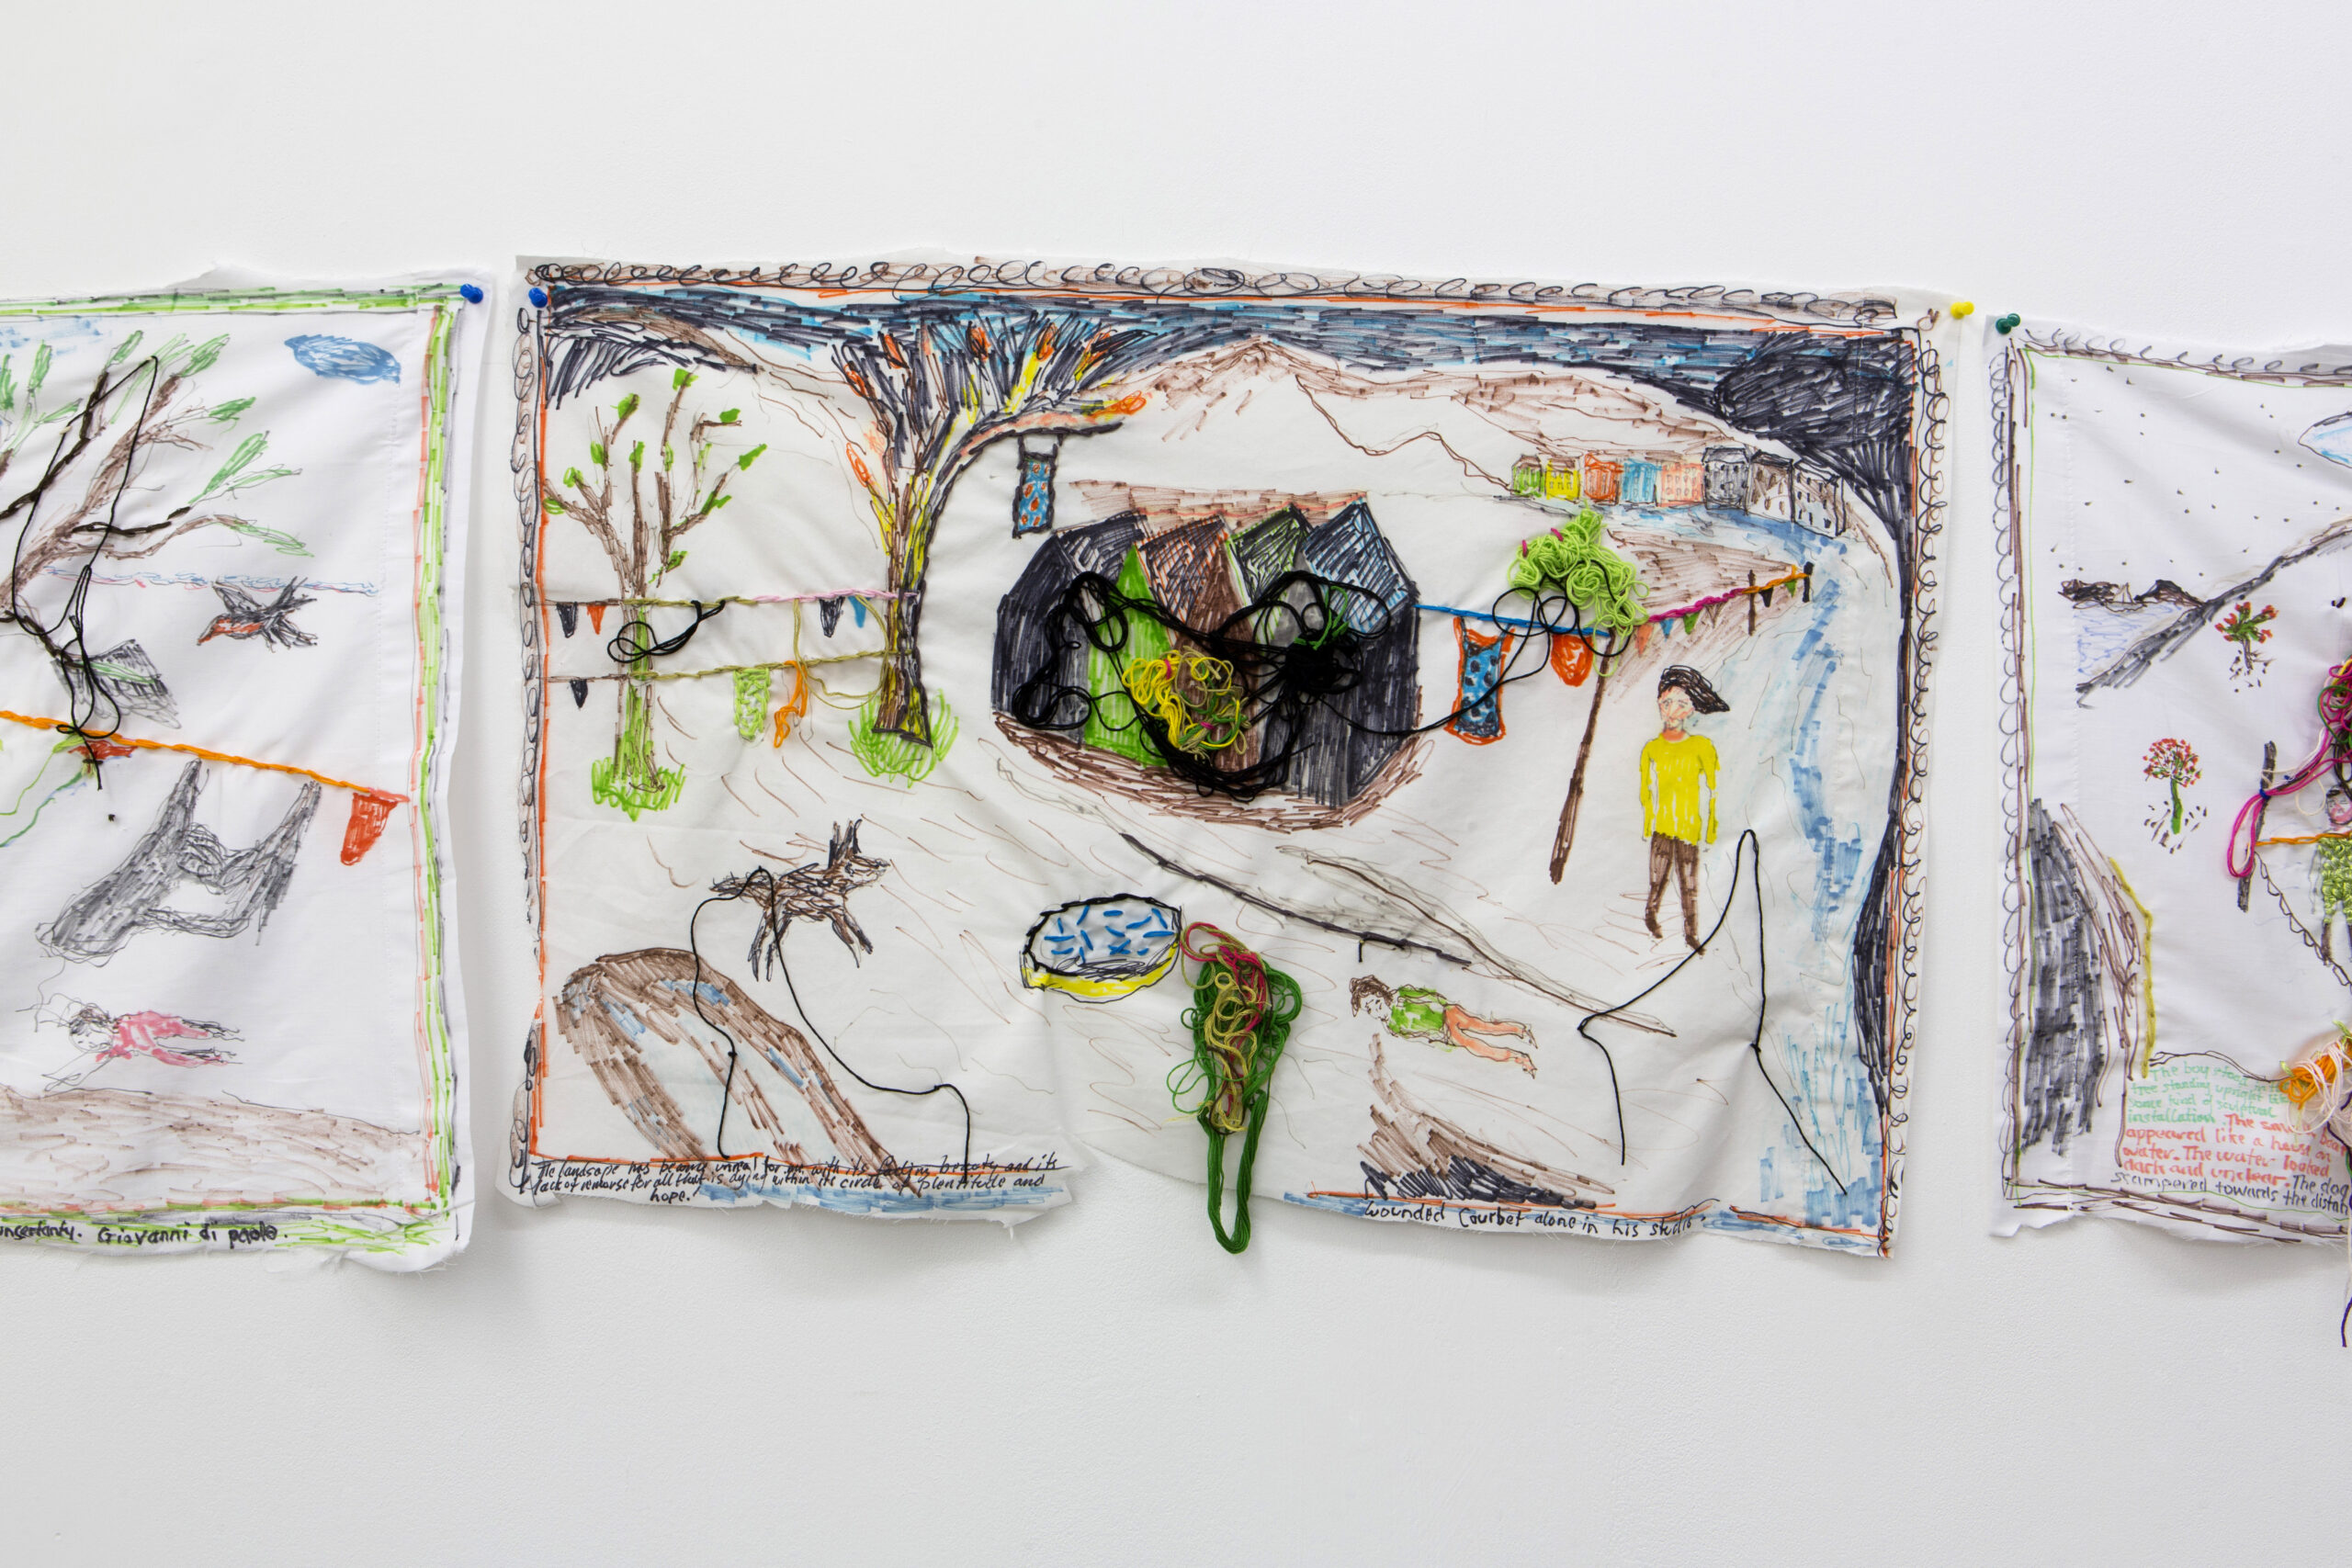 Brian Dawn Chalkley: Wounded Courbet alone in his studio (2020) Pencil, felt tip and thread on cotton pillow case 75 cm x 45 cm